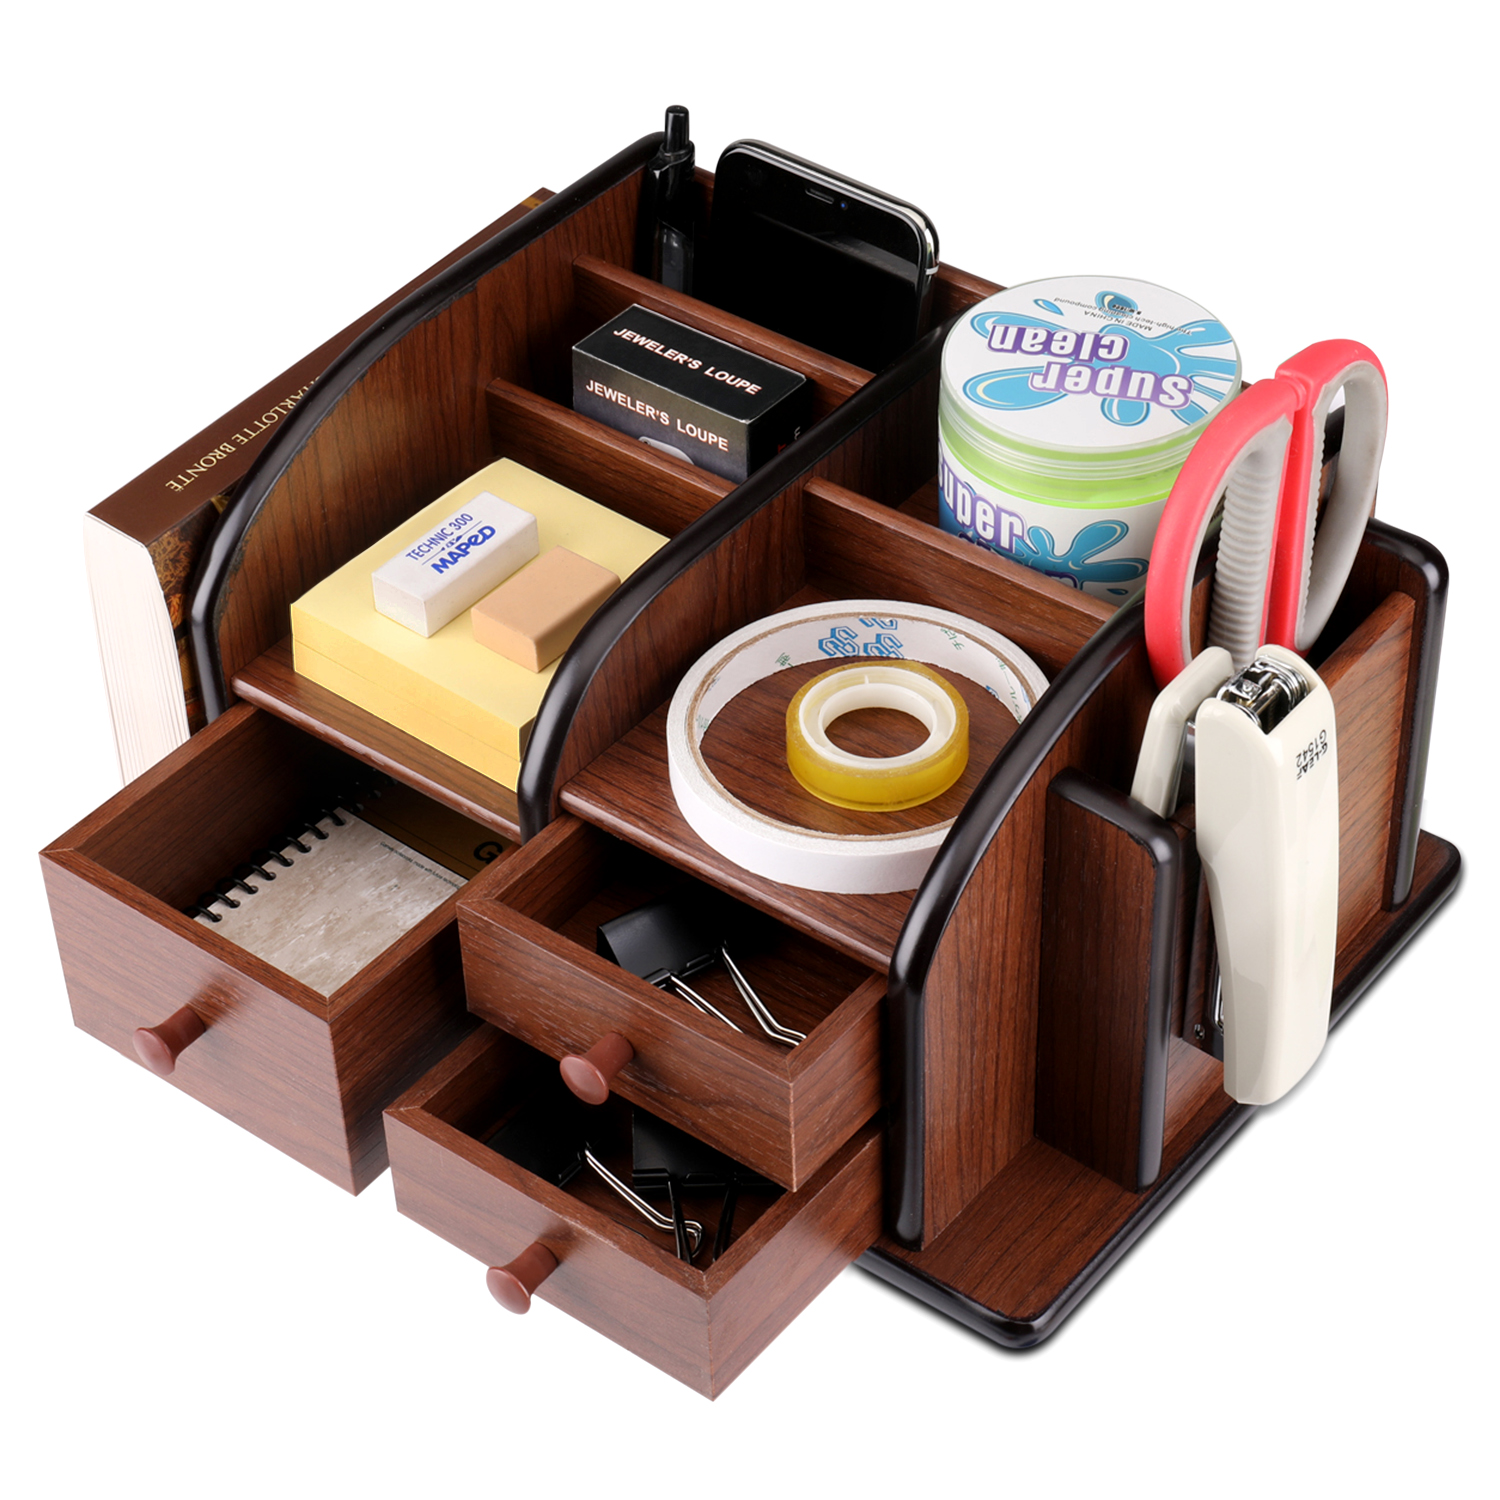 Multi-Functional Compartments - Put all your office supplies and stationery in the multi compartments of well-thought out dimensions and keep your desktop / tabletop tidy and clutter-free